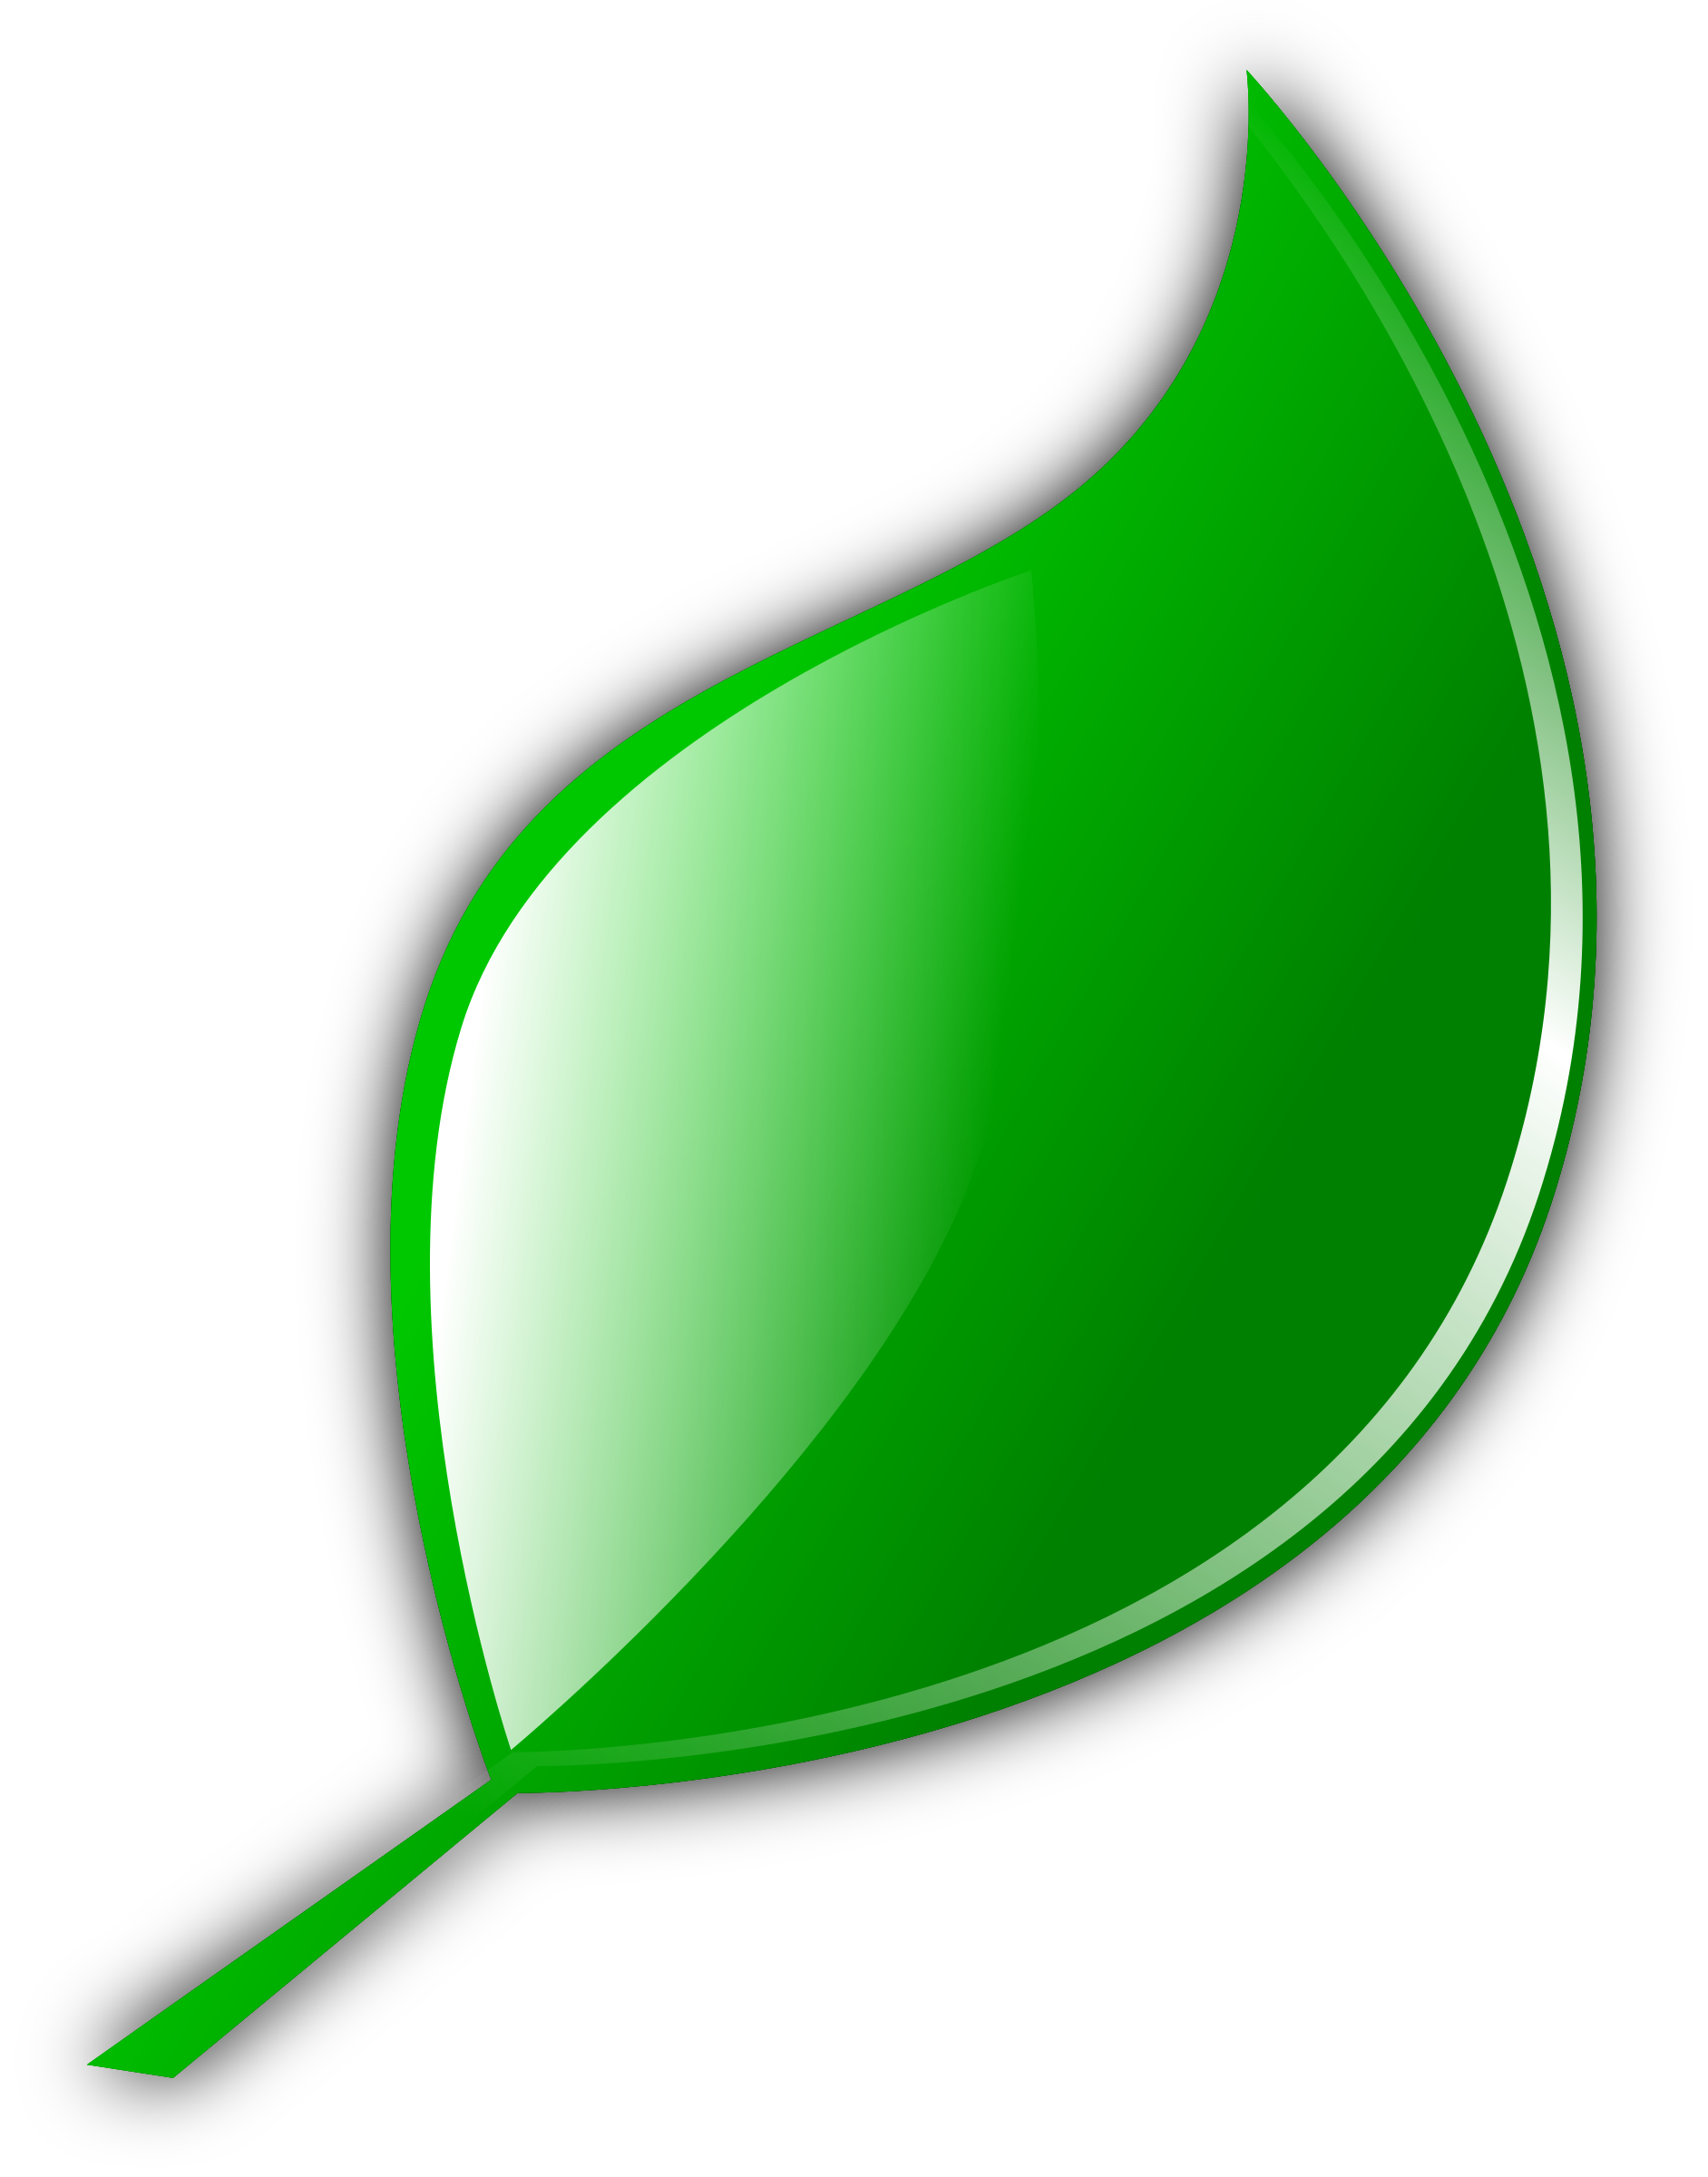 Cartoon leaf png. Leave icon free icons